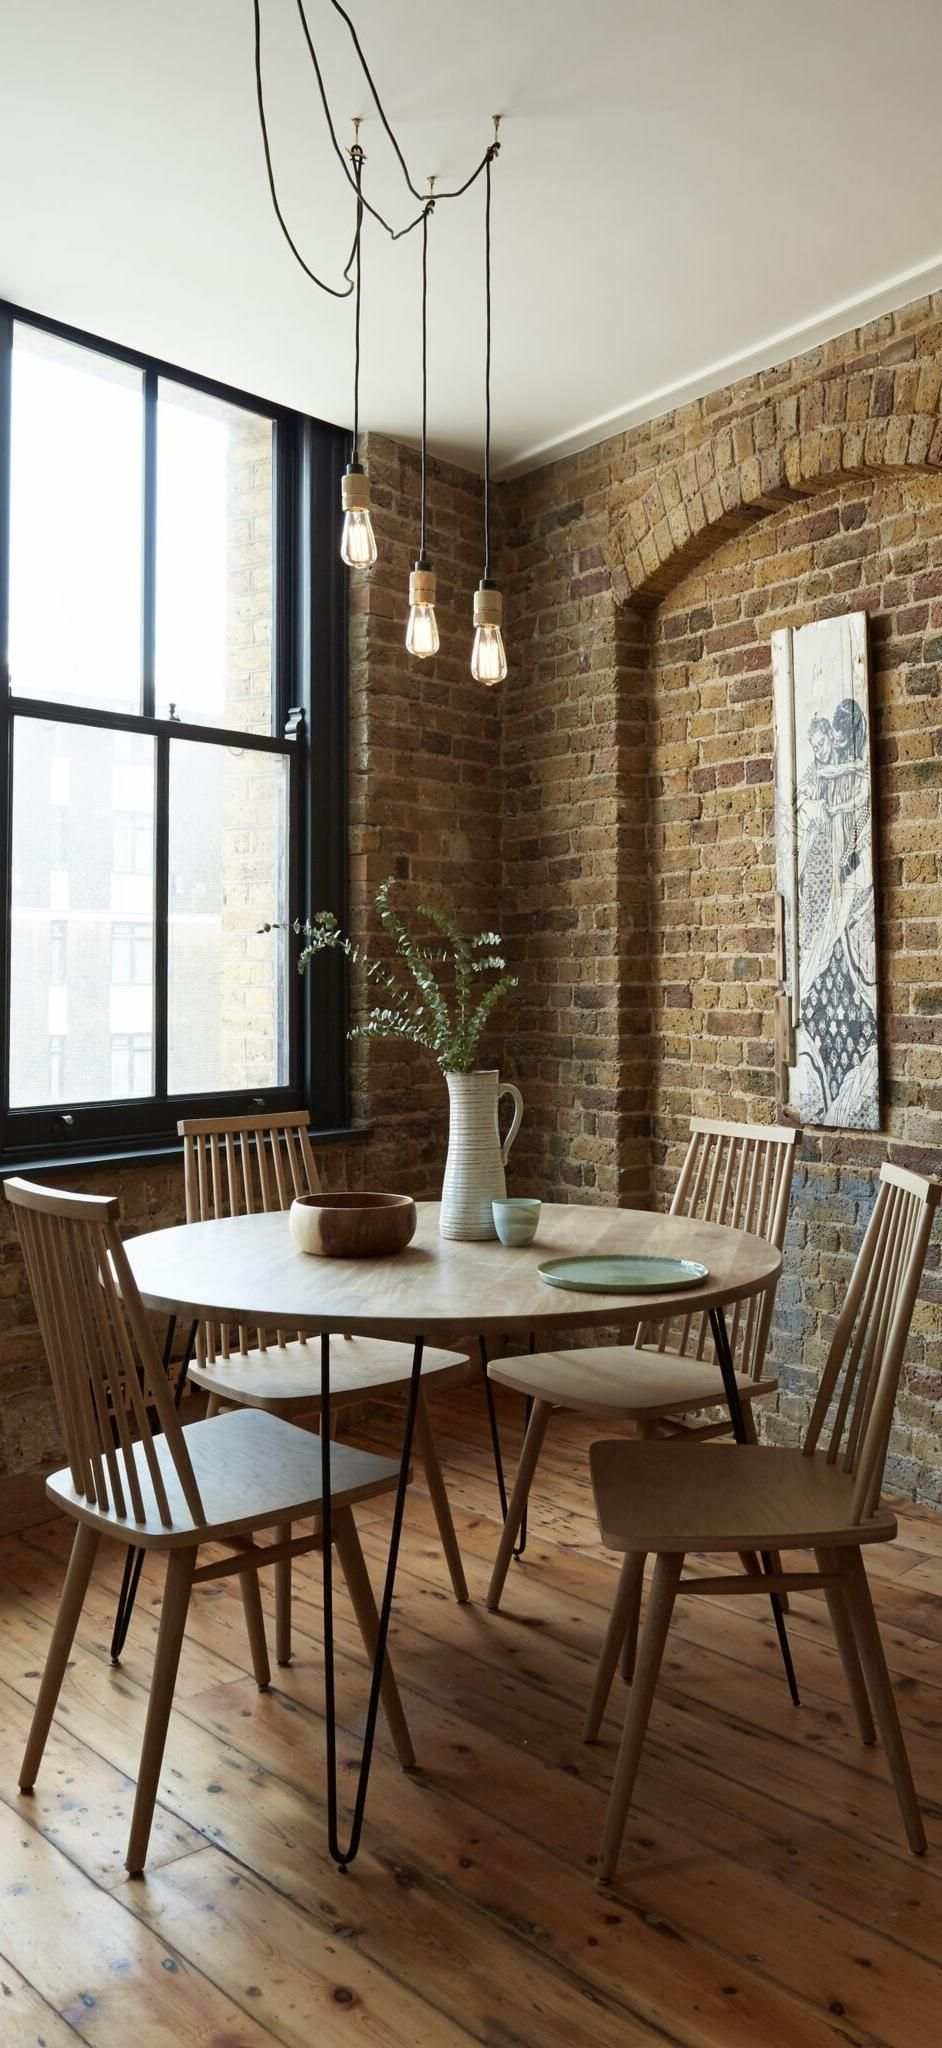 Inspirational How to Decorate A Round Dining Room Table